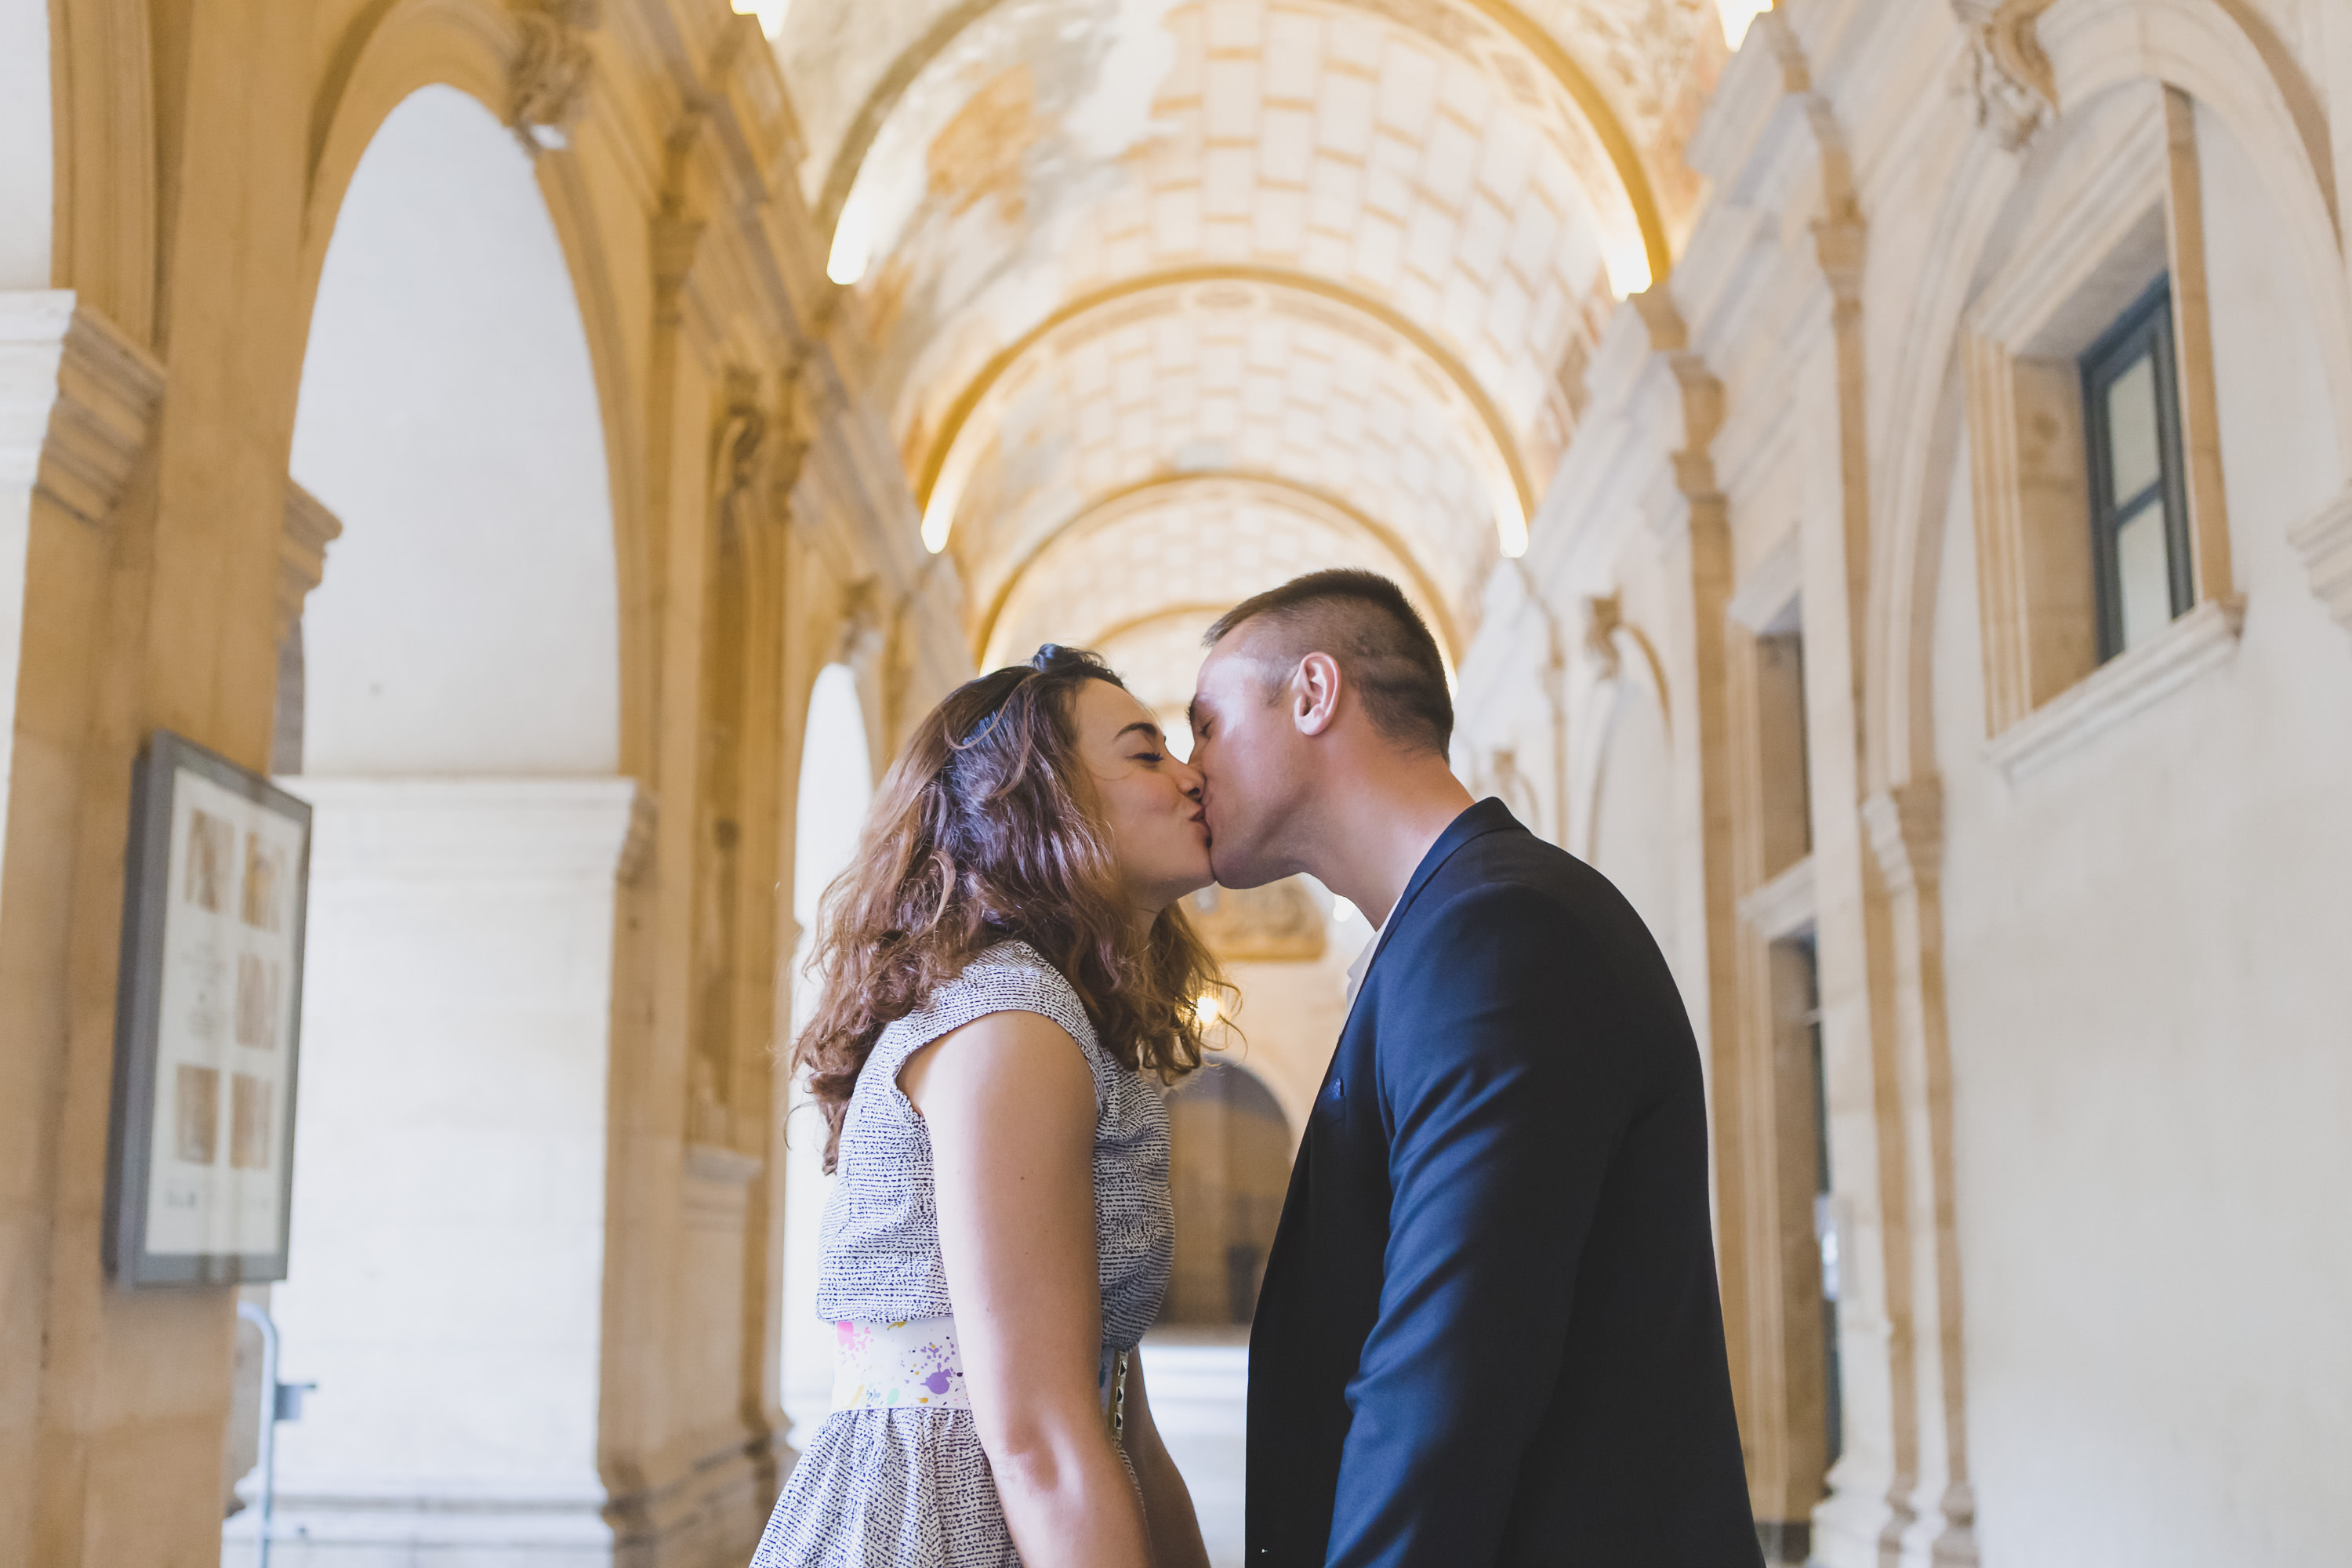 Photographe mariage Lyon Engagement love session vieux lyon french destination wedding photographer france bourgogne genève paris lyon love session destination wedding france luxury wedding romantic emotion sweetness naturel